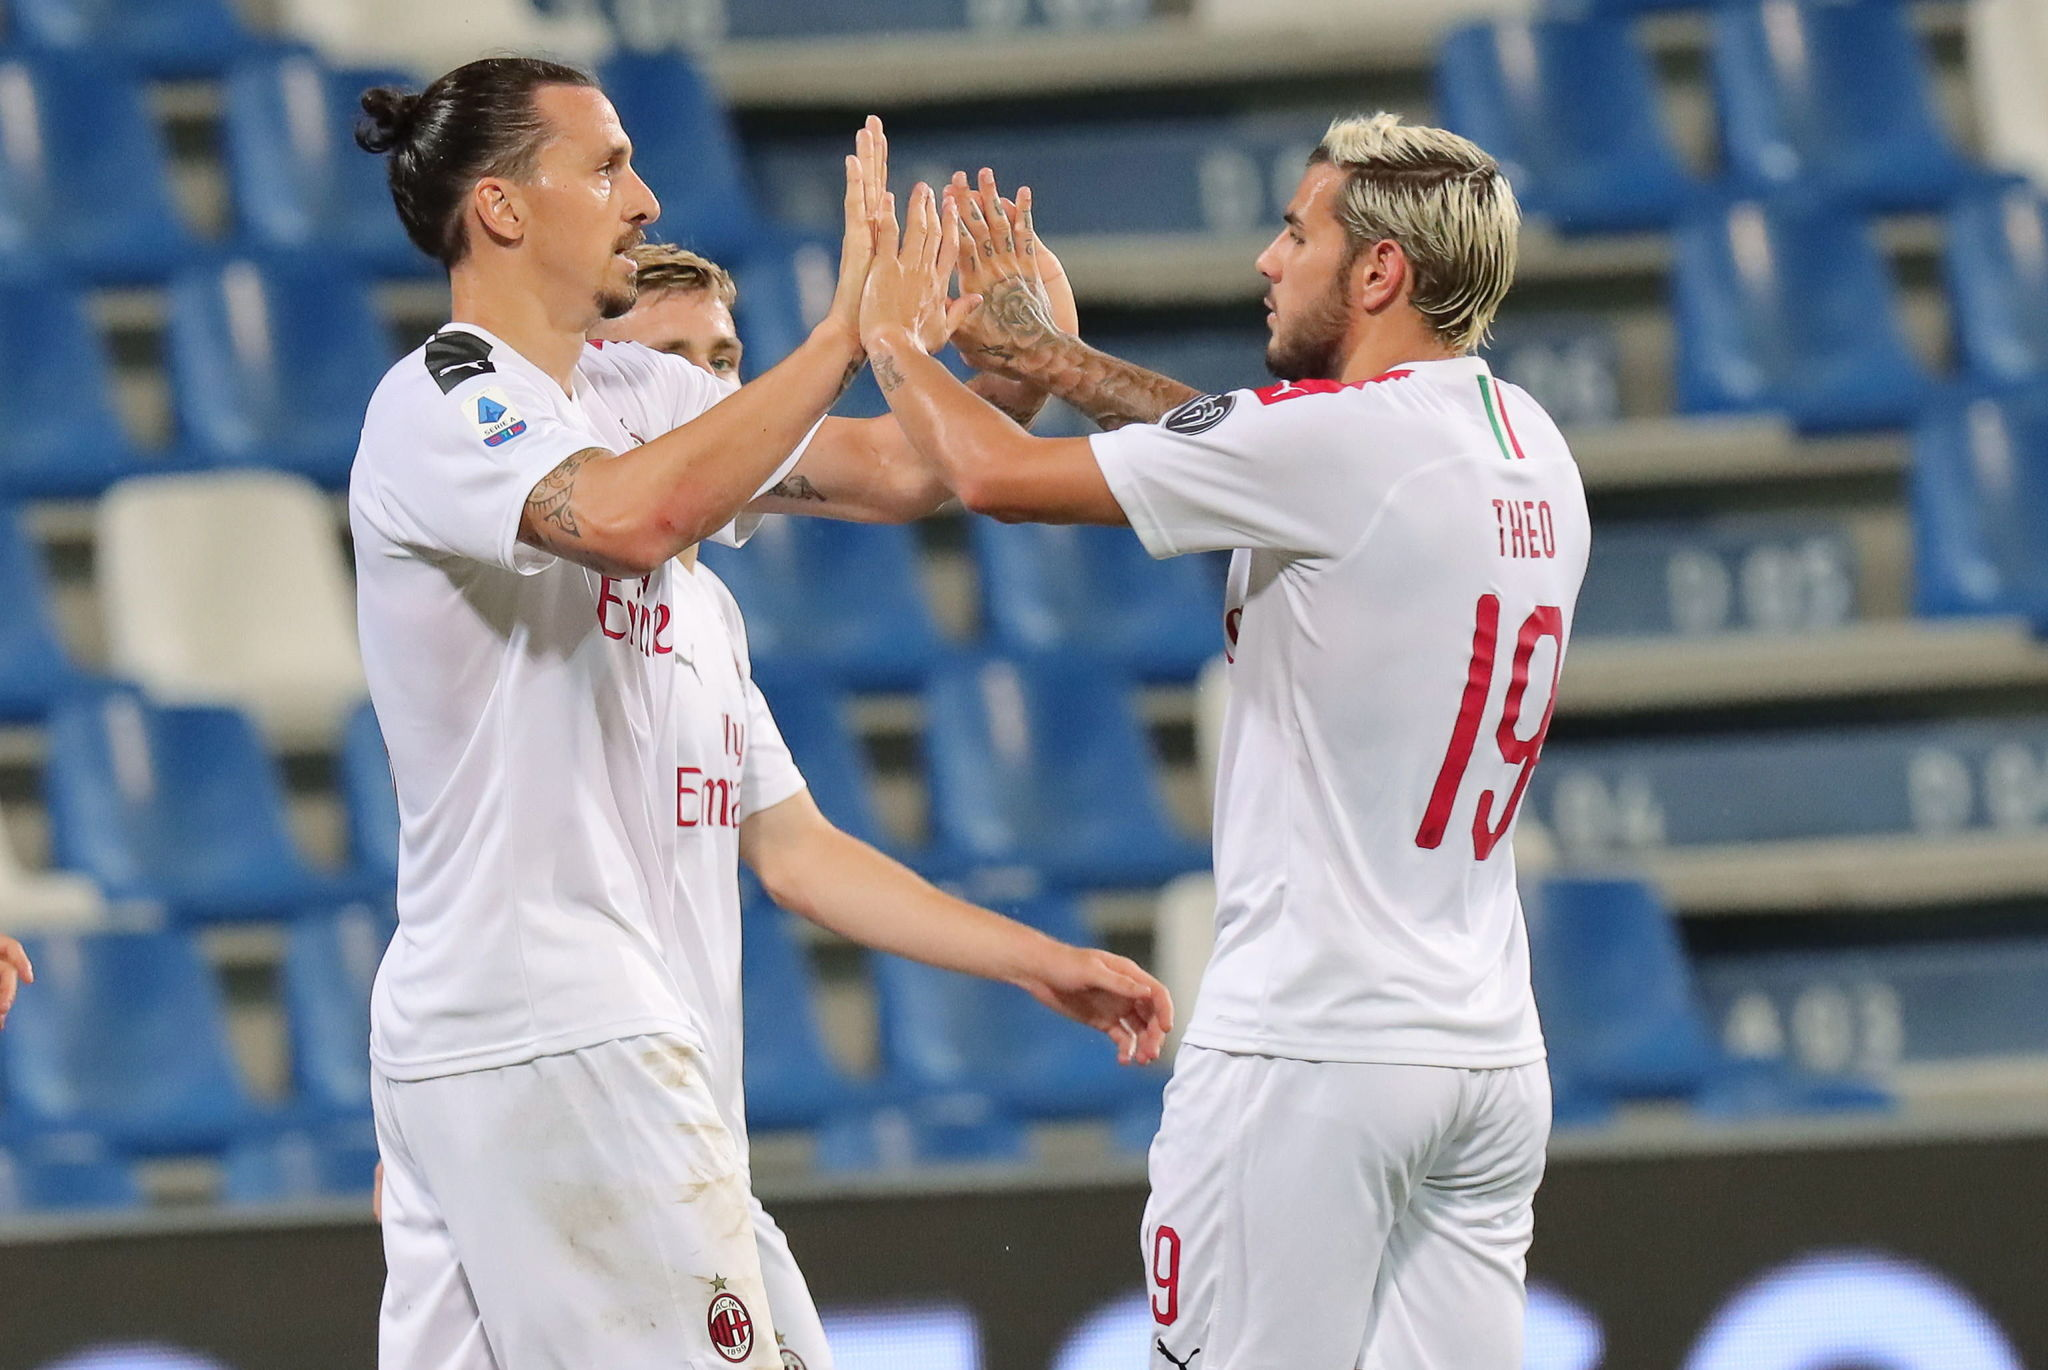 Reggio Emilia (Italy), 21/07/2020.- Milans Zlatan lt;HIT gt;Ibrahimovic lt;/HIT gt; (L) jubilates with his teammate Theo Hernandez after scoring during the Italian Serie A soccer match US Sassuolo vs AC Milan at Mapei Stadium in Reggio Emilia, Italy, 21 July 2020. (Italia) EFE/EPA/ELISABETTA BARACCHI